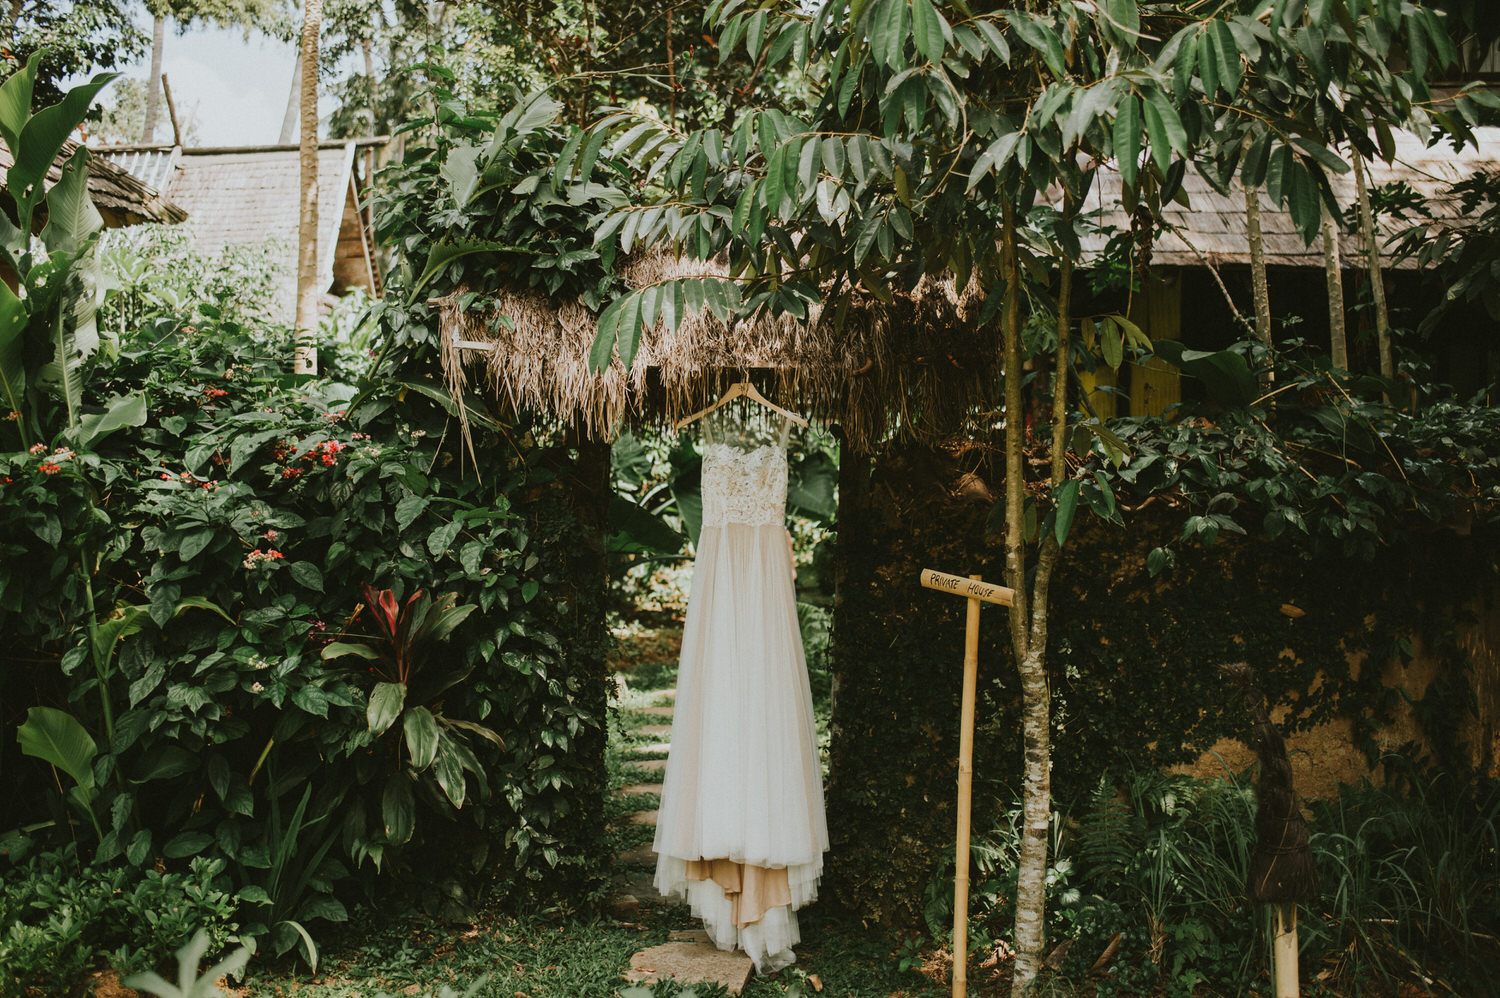 bali-wedding-ubud-wedding-wedding-destination-diktatphotography-kadek-artayasa-elaine-and-glenn-006